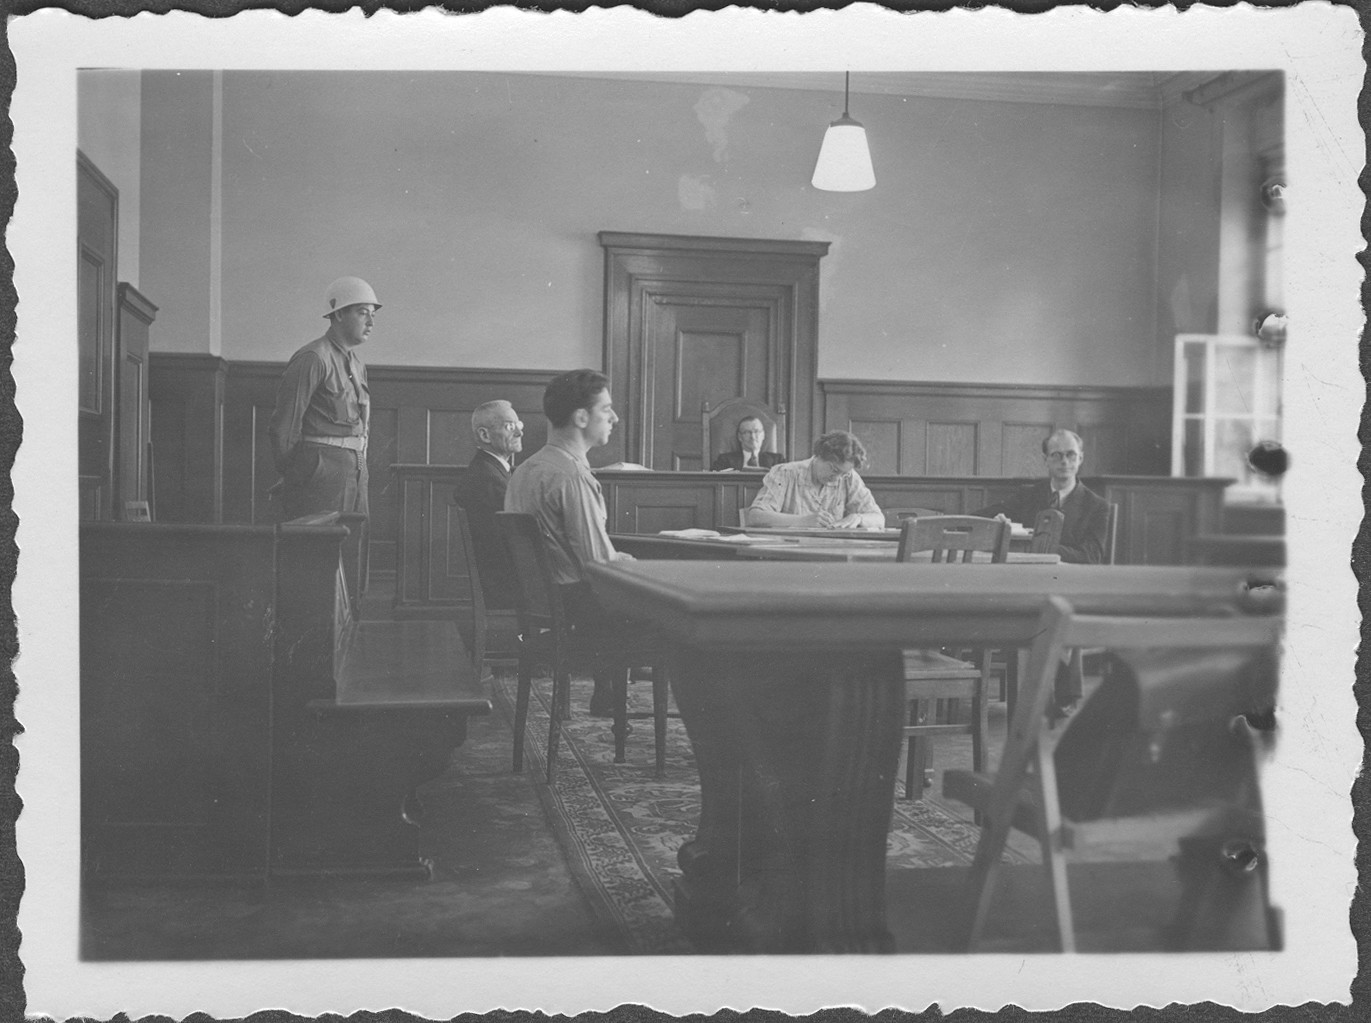 Interrogation of General Franz Halder, former Chief of Staff of the German Armed Forces at the IMT Nuremberg commission hearings investigating indicted Nazi organizations.  Commissioner McIlwraith is pictured in the background.